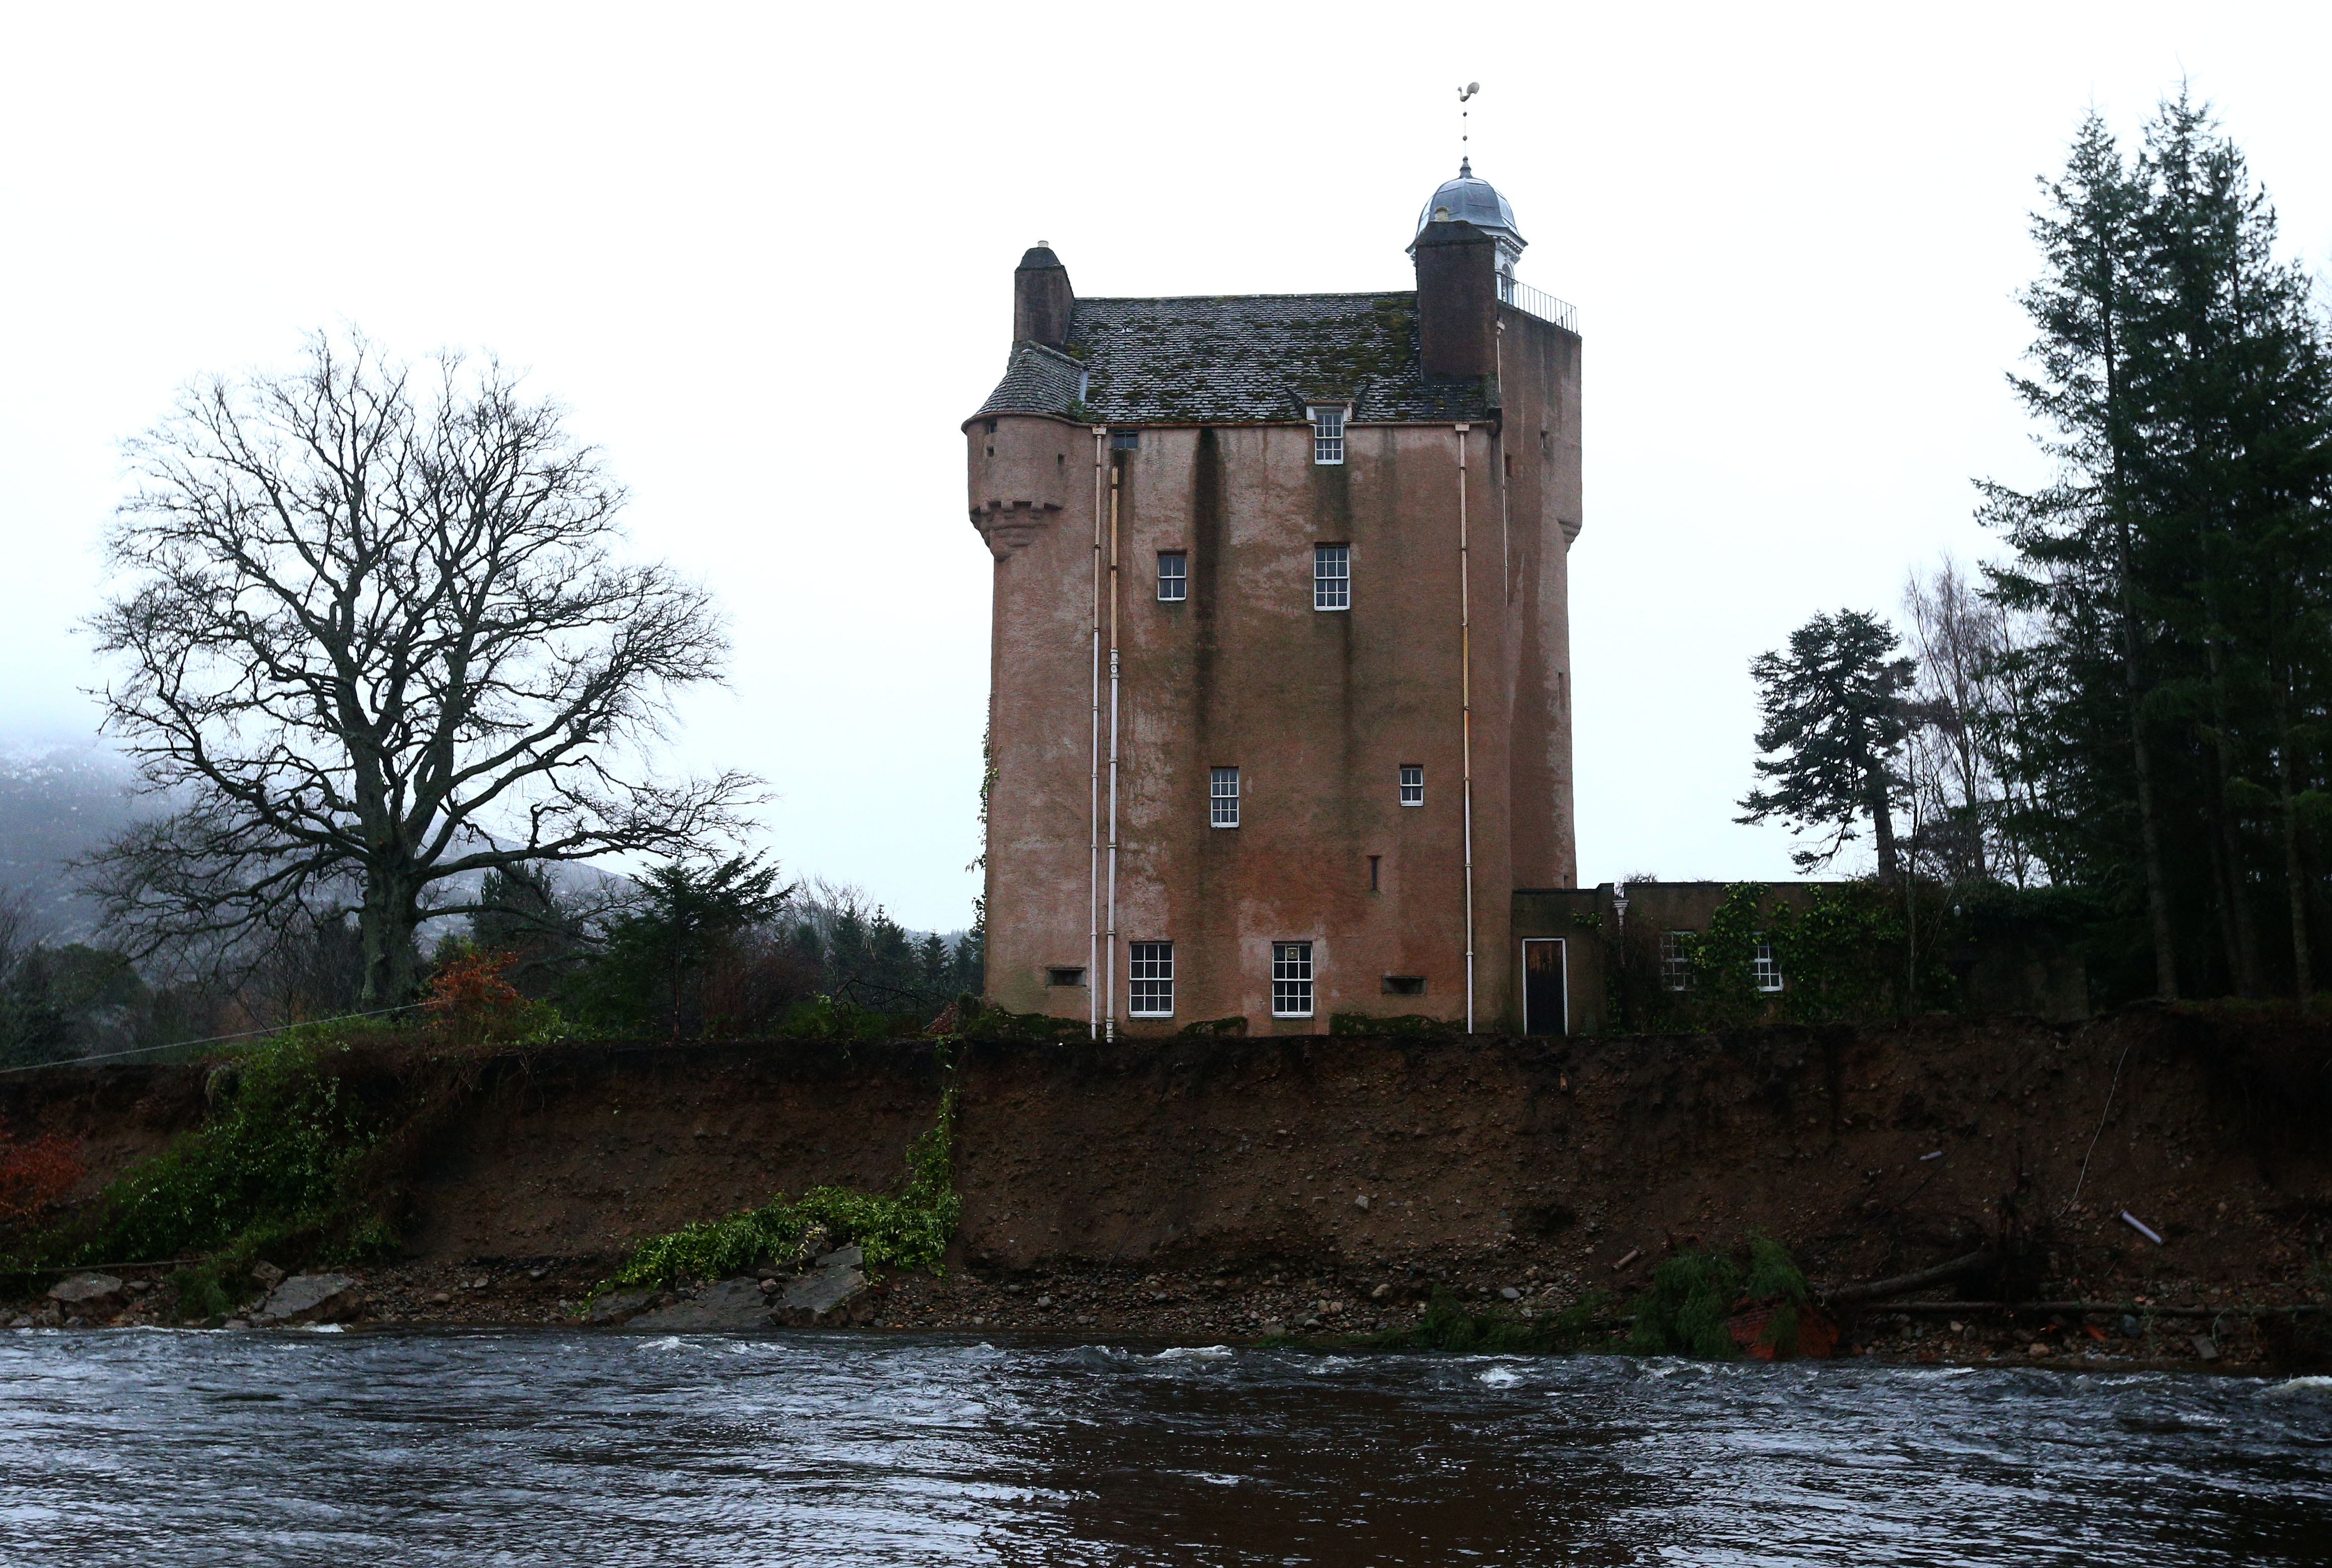 BALLATER, SCOTLAND - JANUARY 5 : 450 year old Abergeldie Castle owned by John Seton Howard Gordon, the Baron of Abergeldie, sits precariously on the edge of the River Dee after storm surge swept away the river bank on January 5, 2016 in Ballater, United Kingdom. Storm Gertrude is the latest winter storm to bring heavy rain fall and flooding to the north of England and Scotland, causing widespread disruption to transport and infrastructure. (Photo by Mark Runnacles/Getty Images)